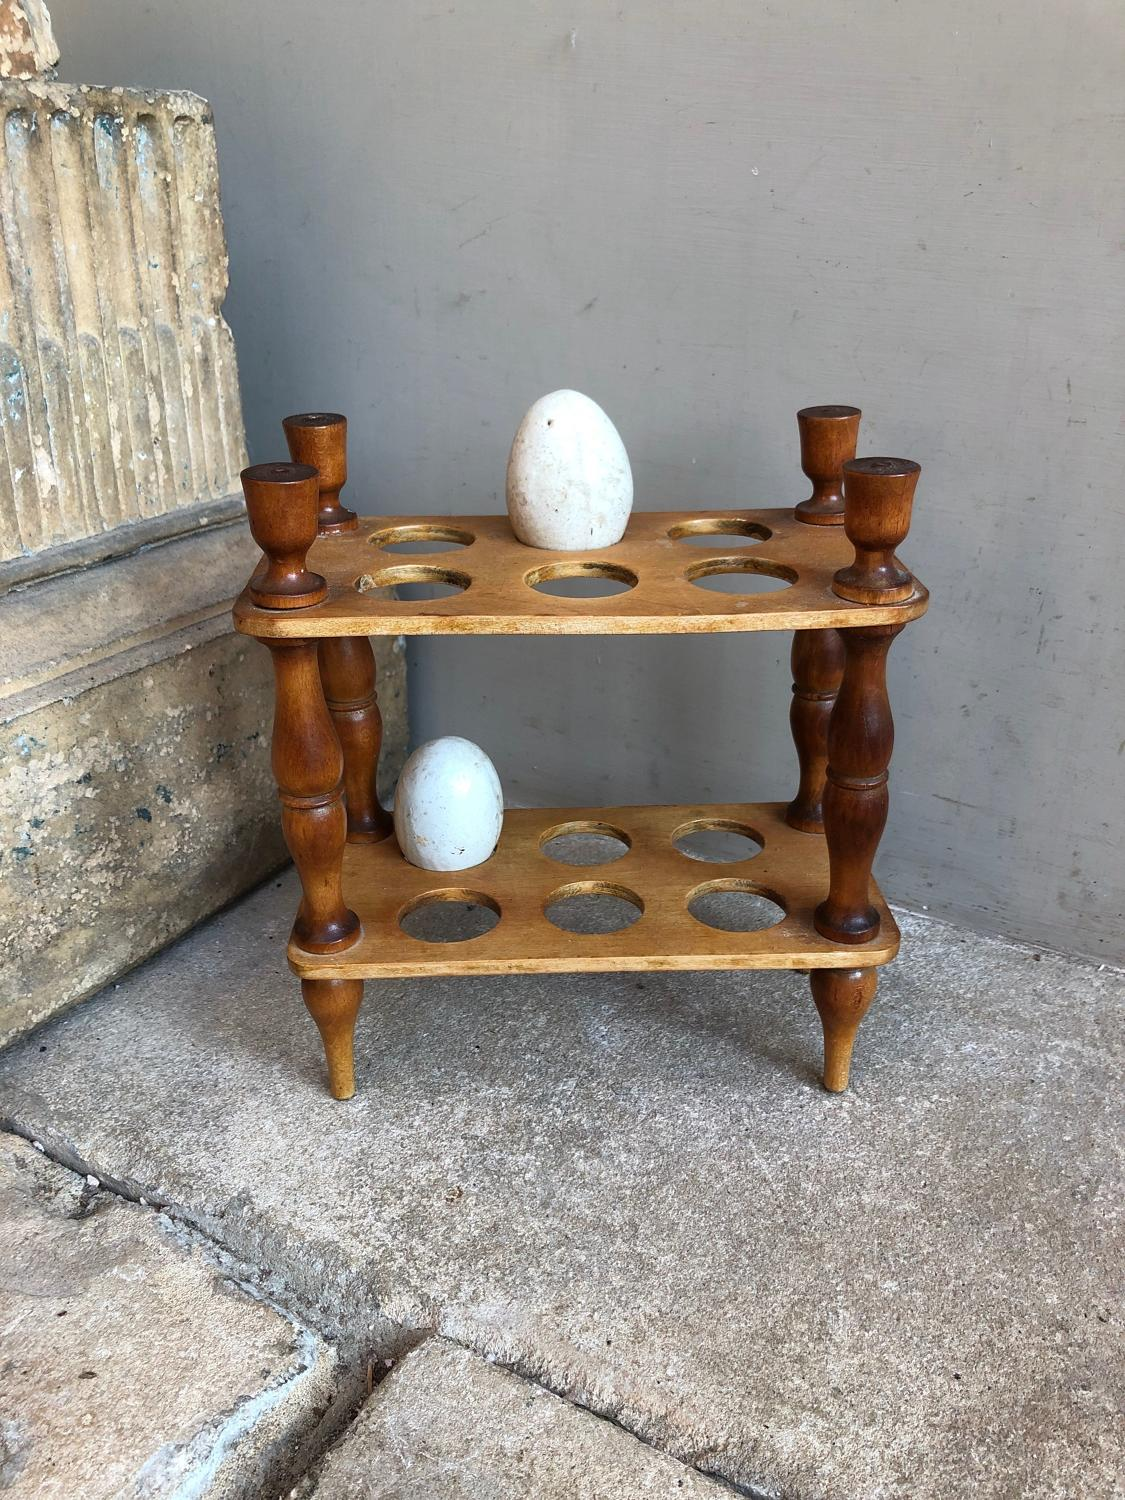 Early 20th Century Treen Two Tier Small Egg Rack - 1 Dozen Eggs